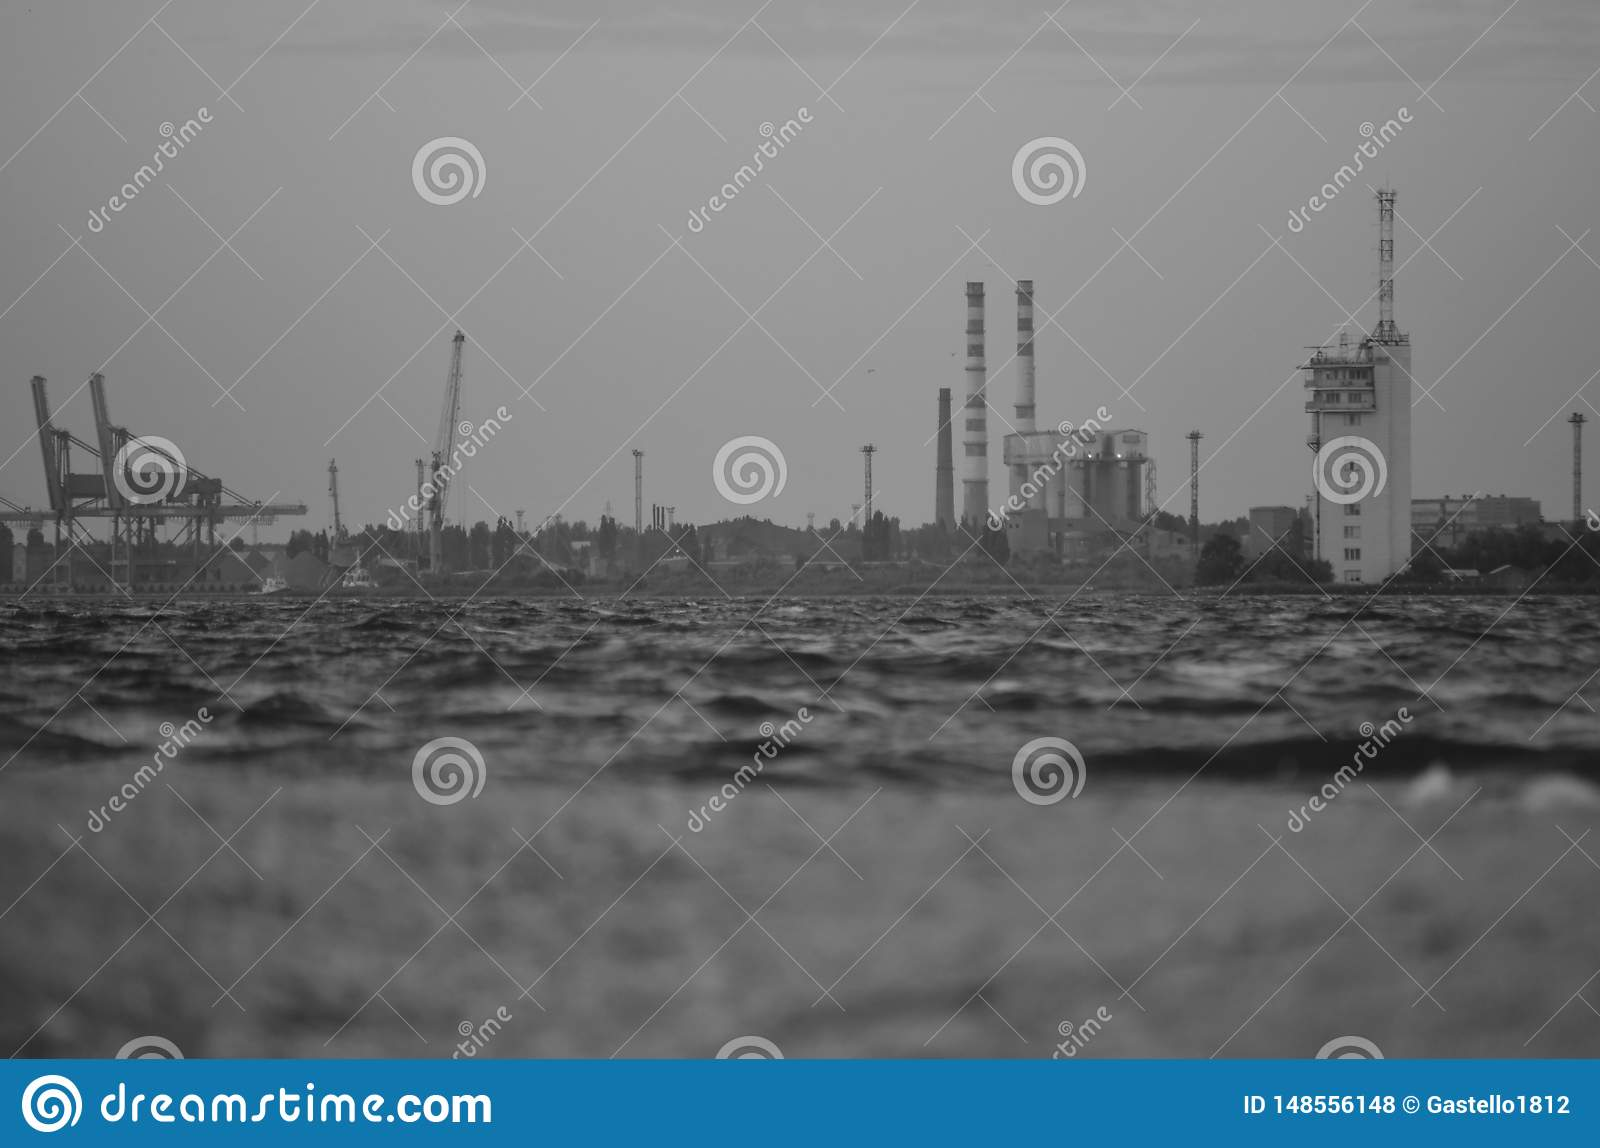 Vintage photo of the port and plant on the shore. View from the water to the shore. Monochrome